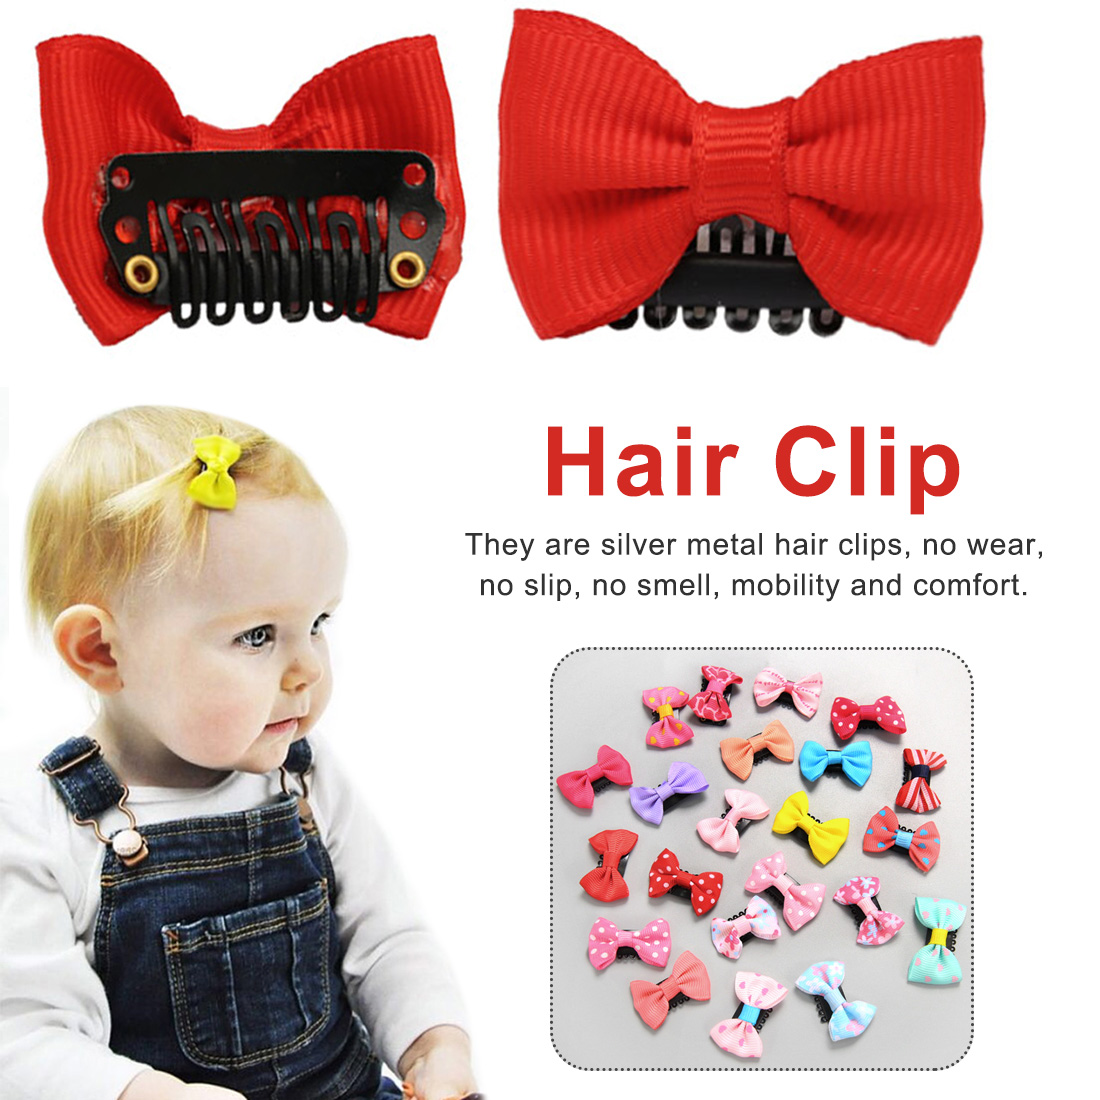 Hairclips ViClips Hair Accessories for Girls Ties 25 Piece Little Girl Bows